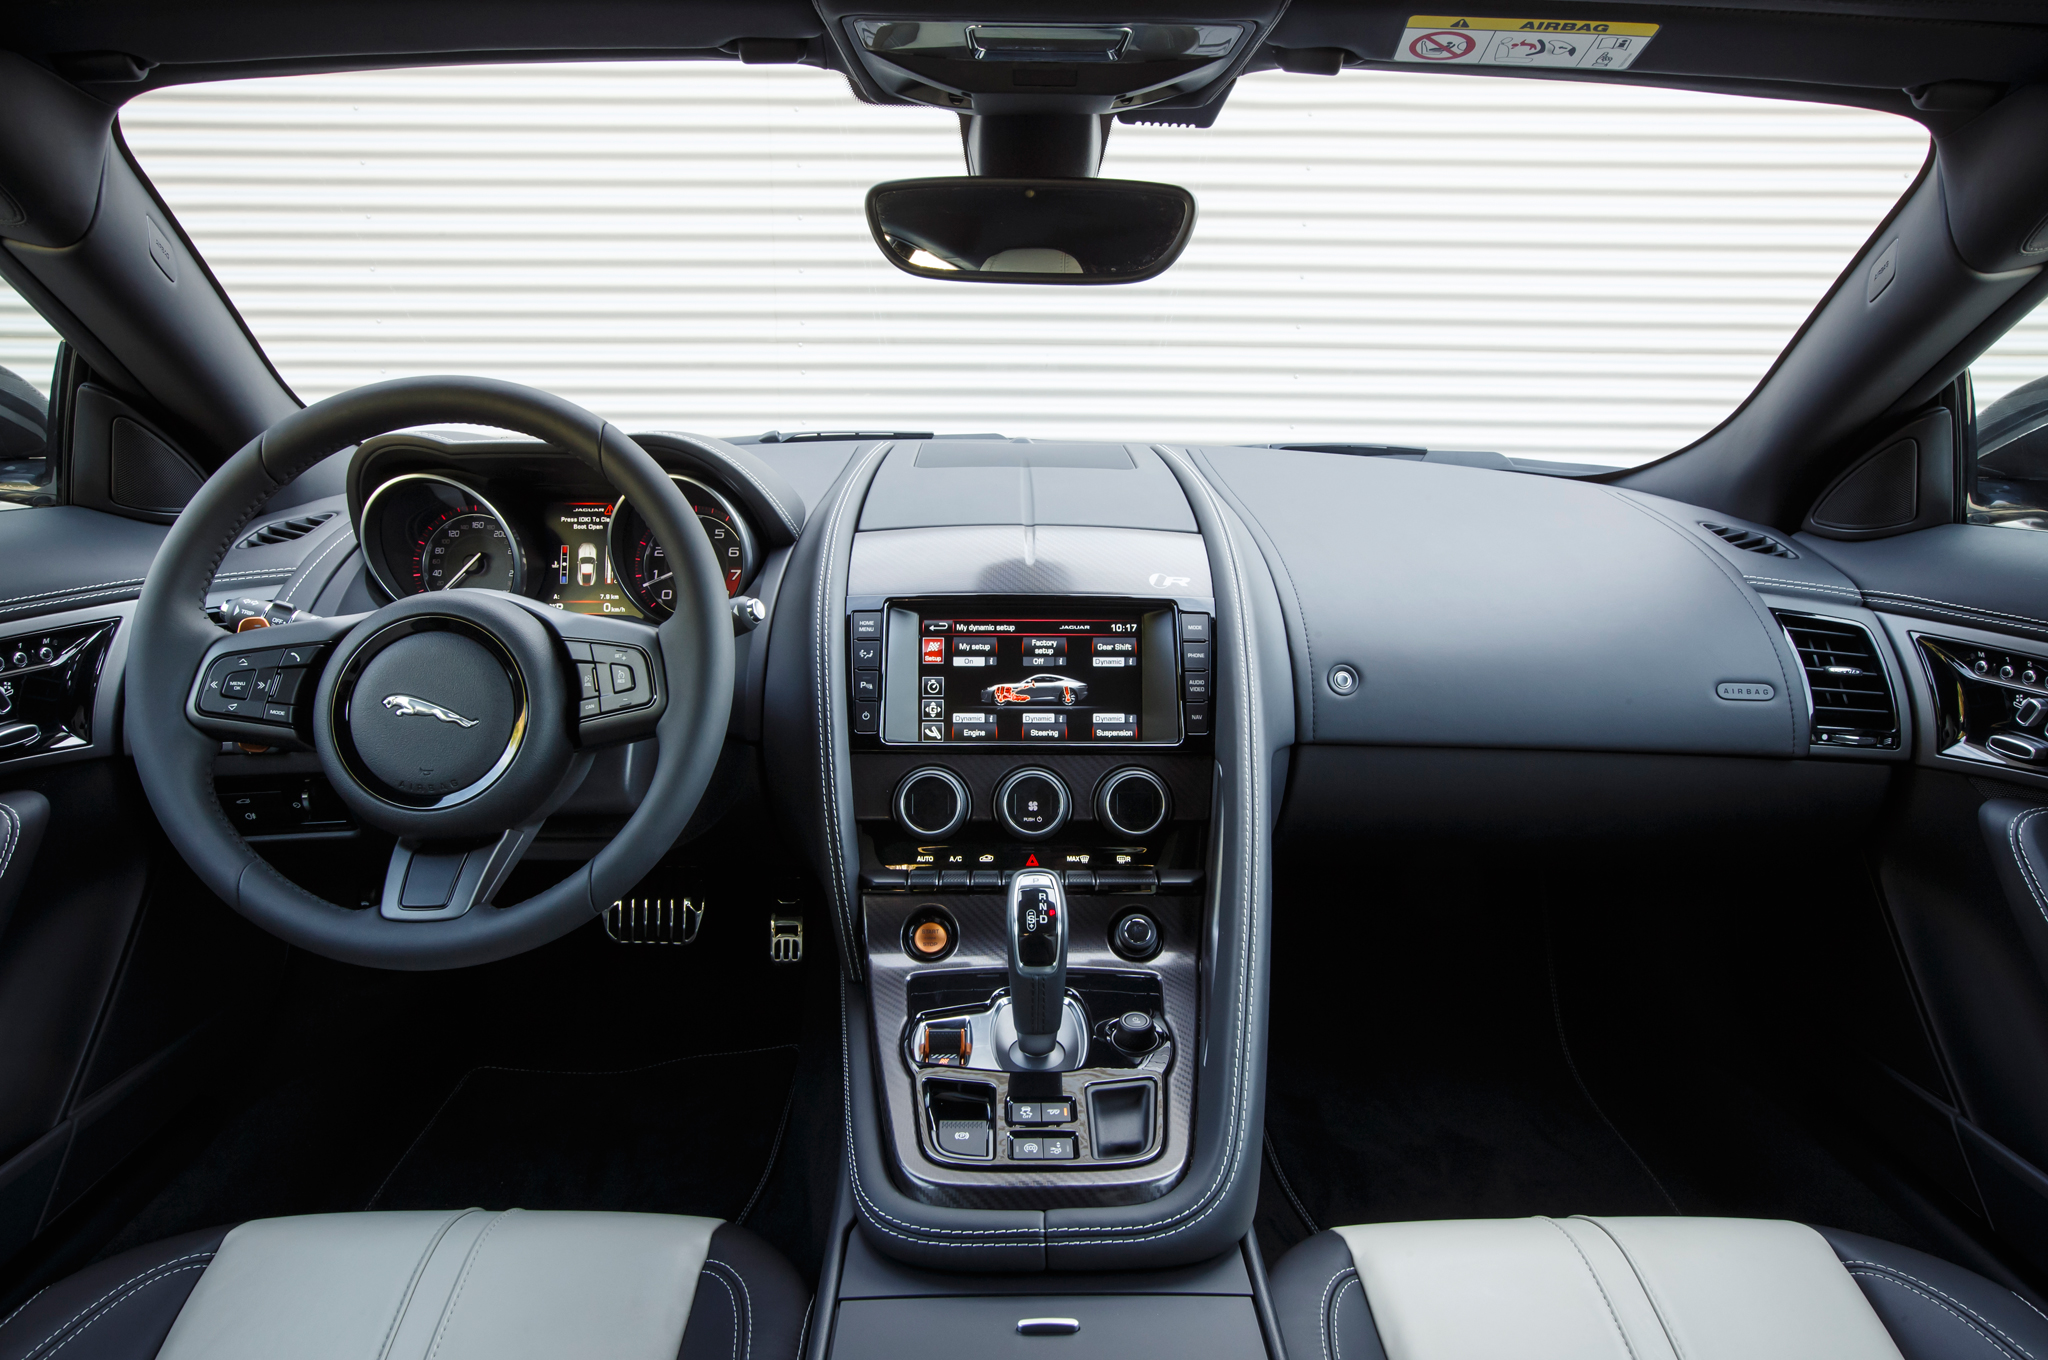 2015 Jaguar F Type Coupe Dashboard Interior (Photo 20 of 26)